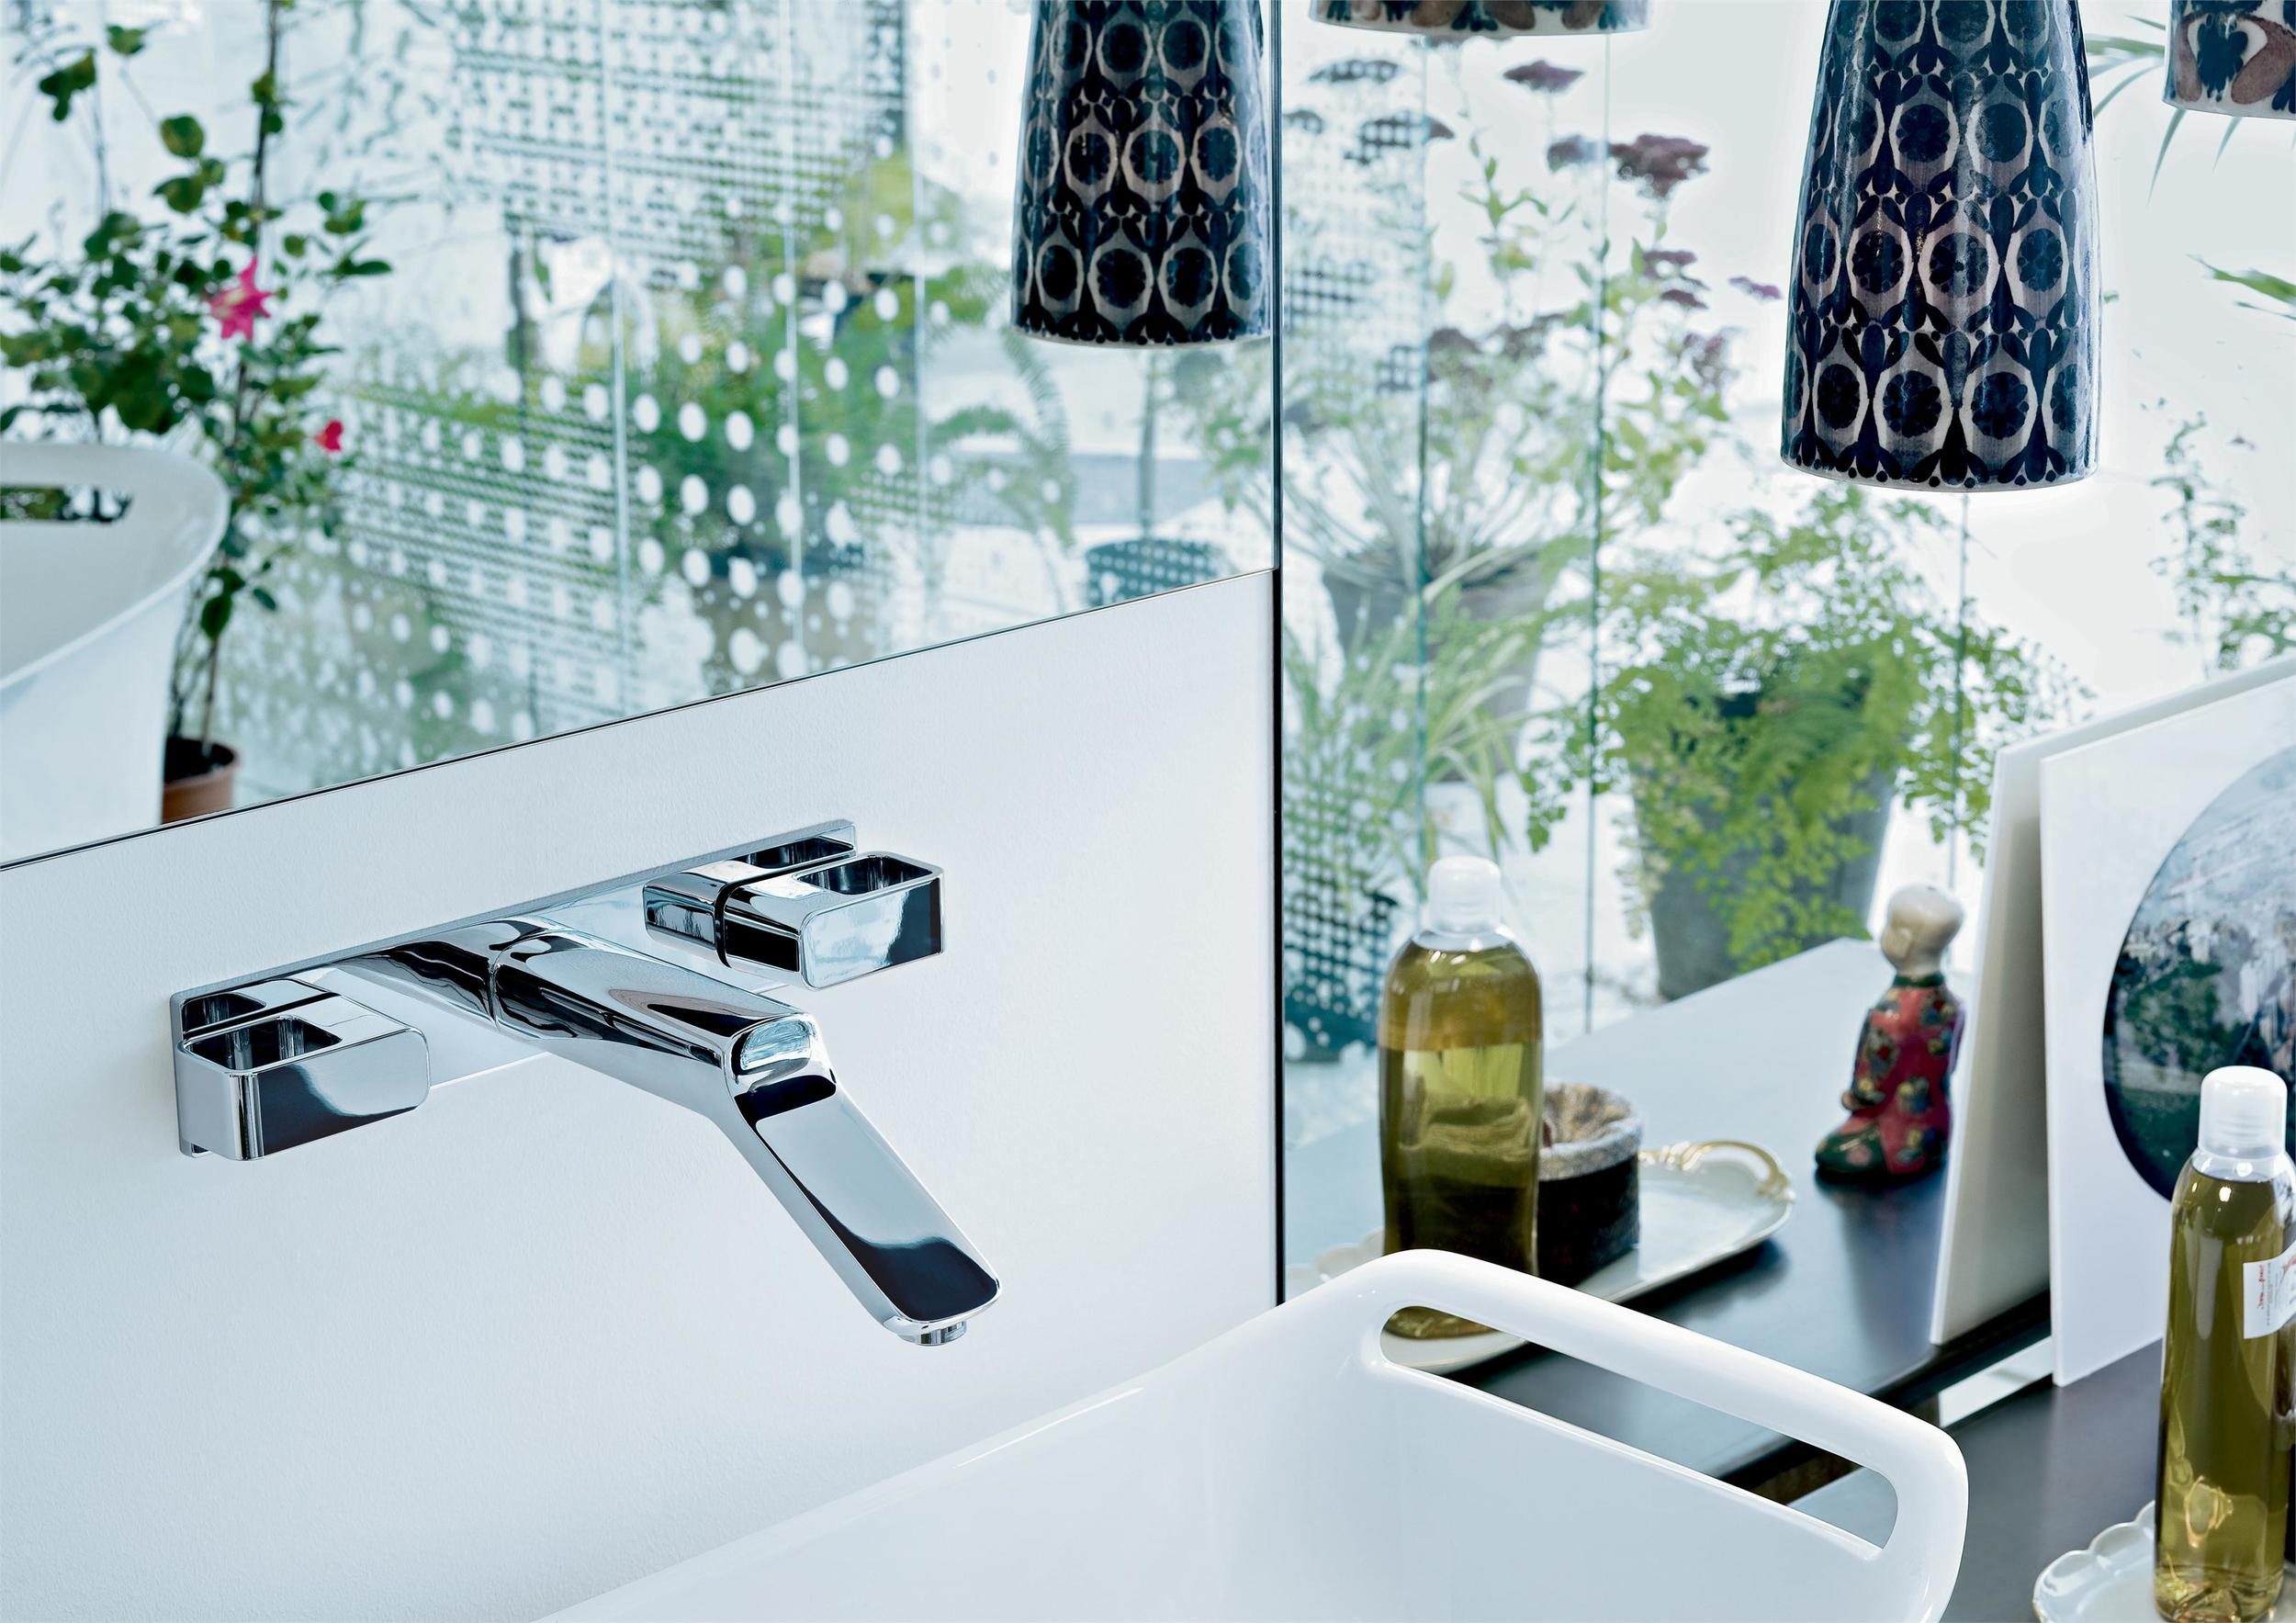 axor-bath-sink-faucets-wall-mounted-widespread-faucet-3200.jpg